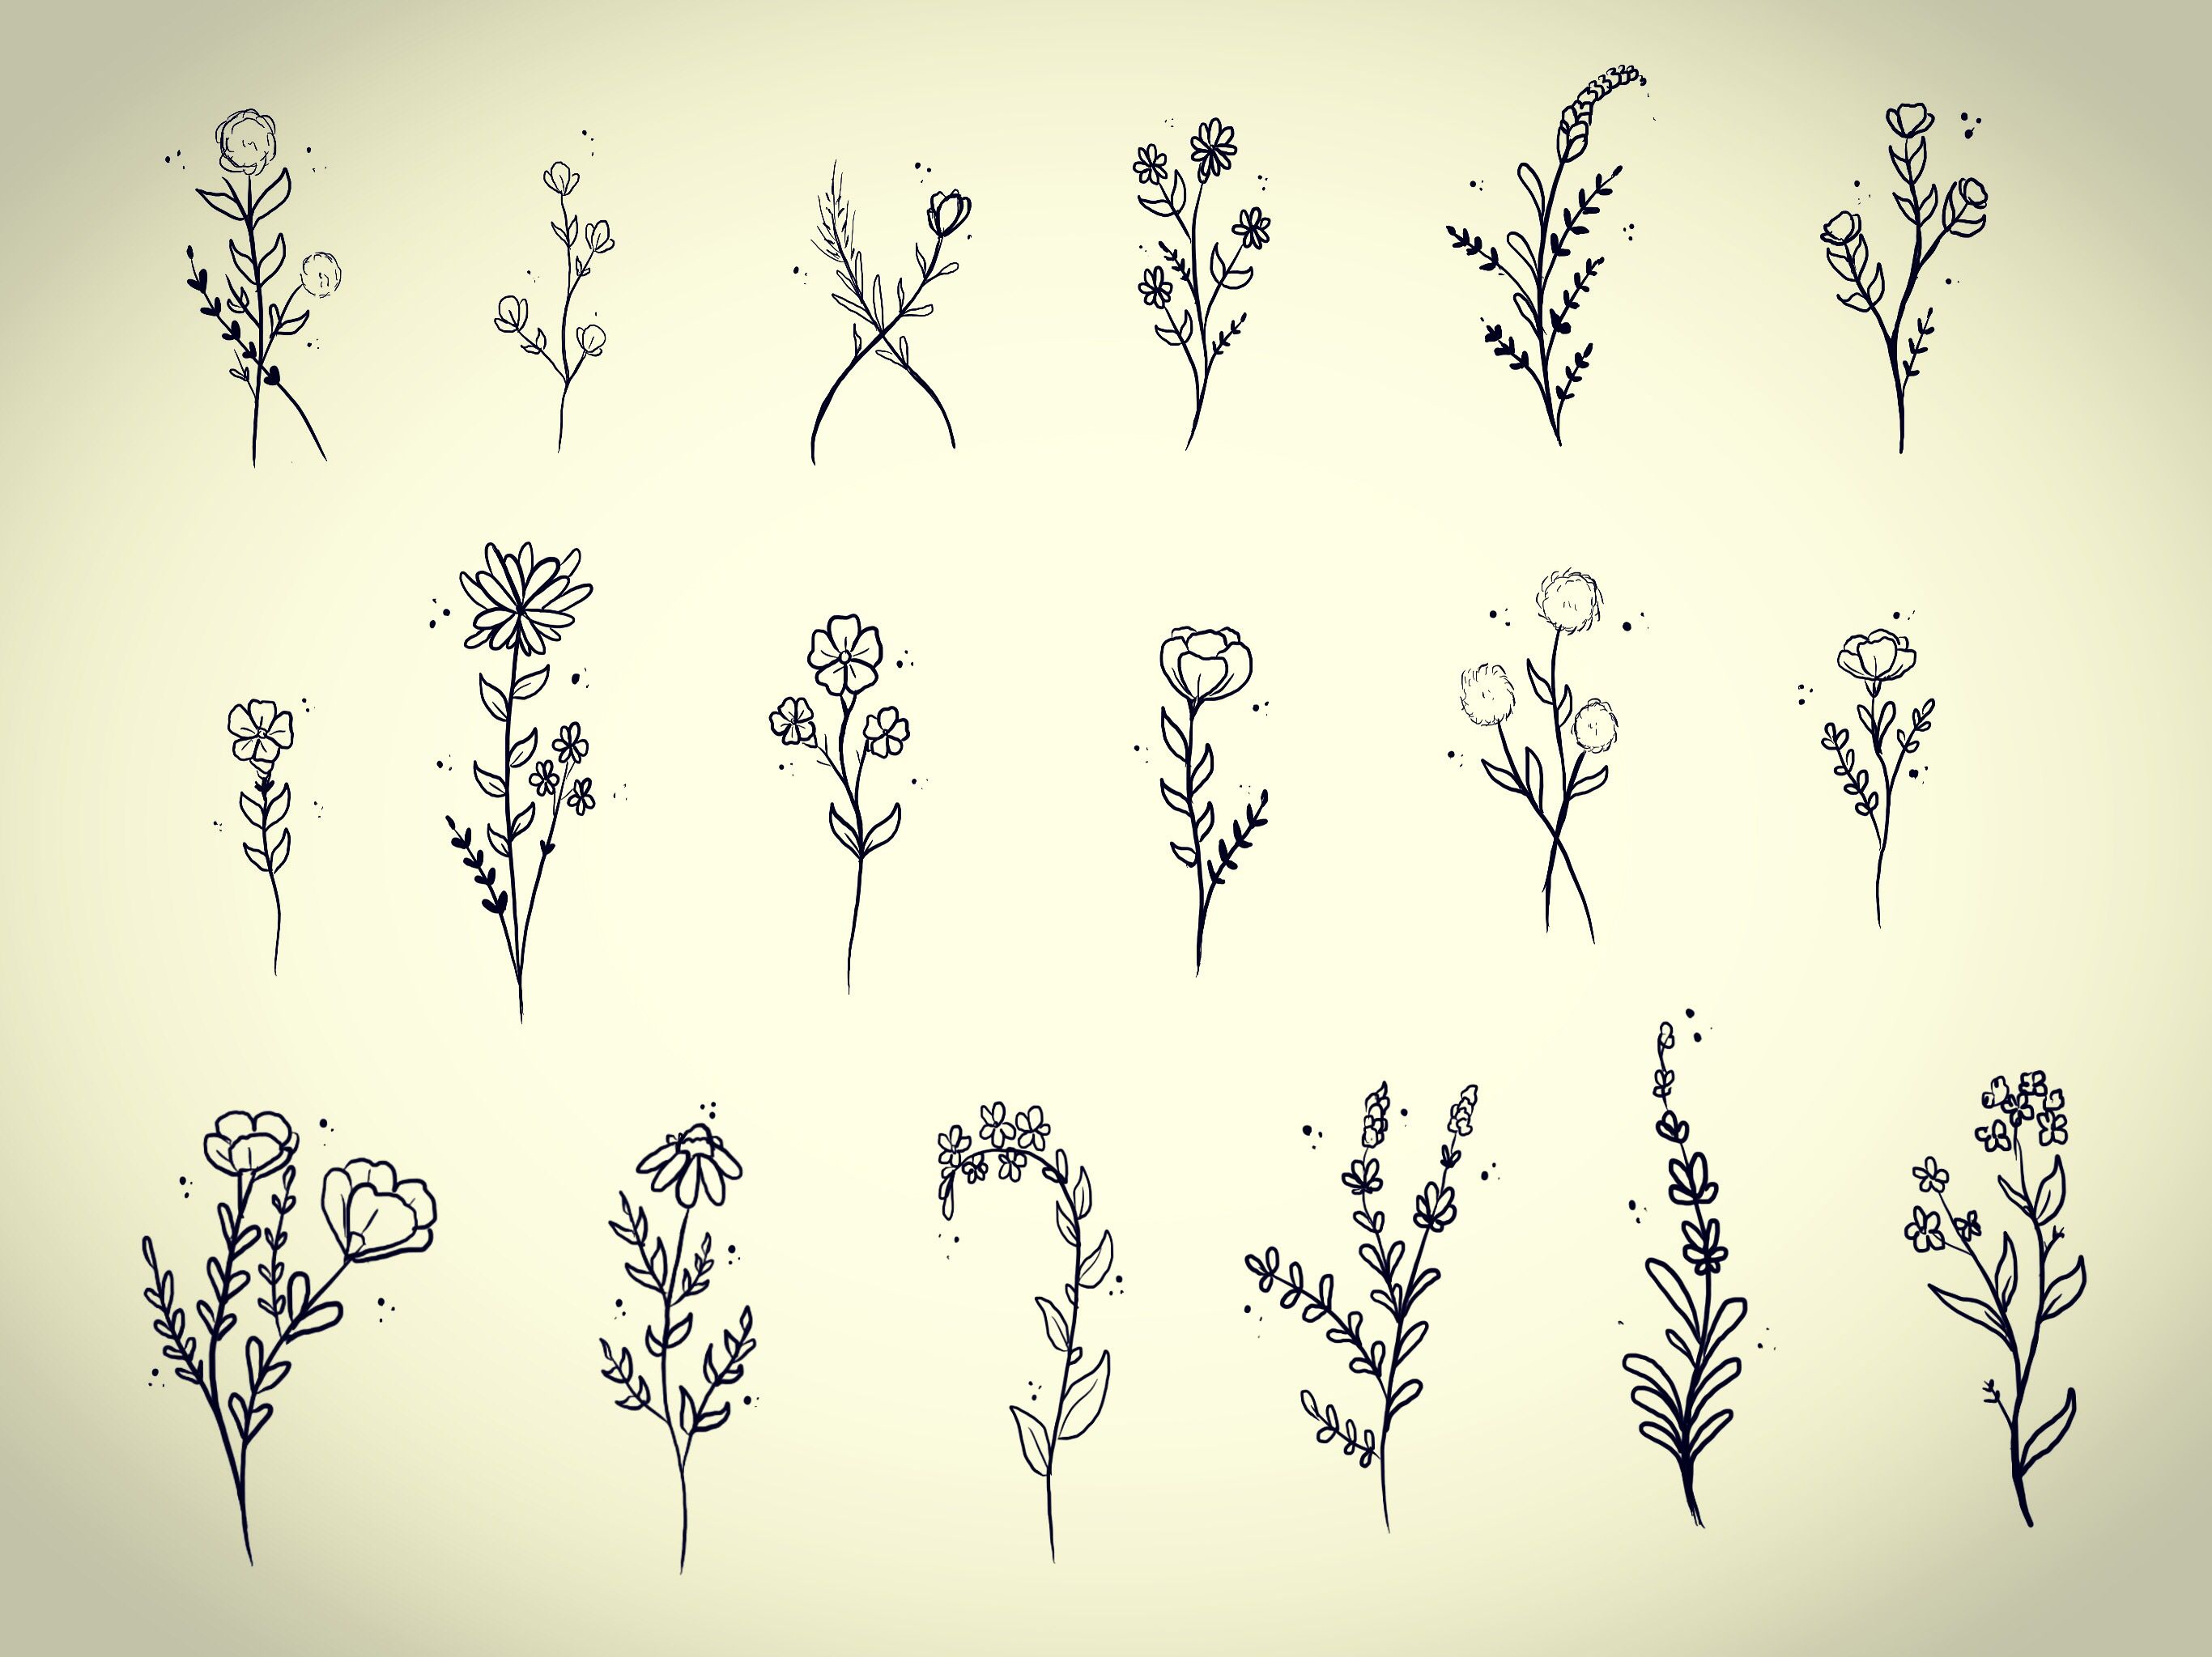 Tattoo ideas simple small small custom flowers by casey hart at rose red tattoo ellicott city